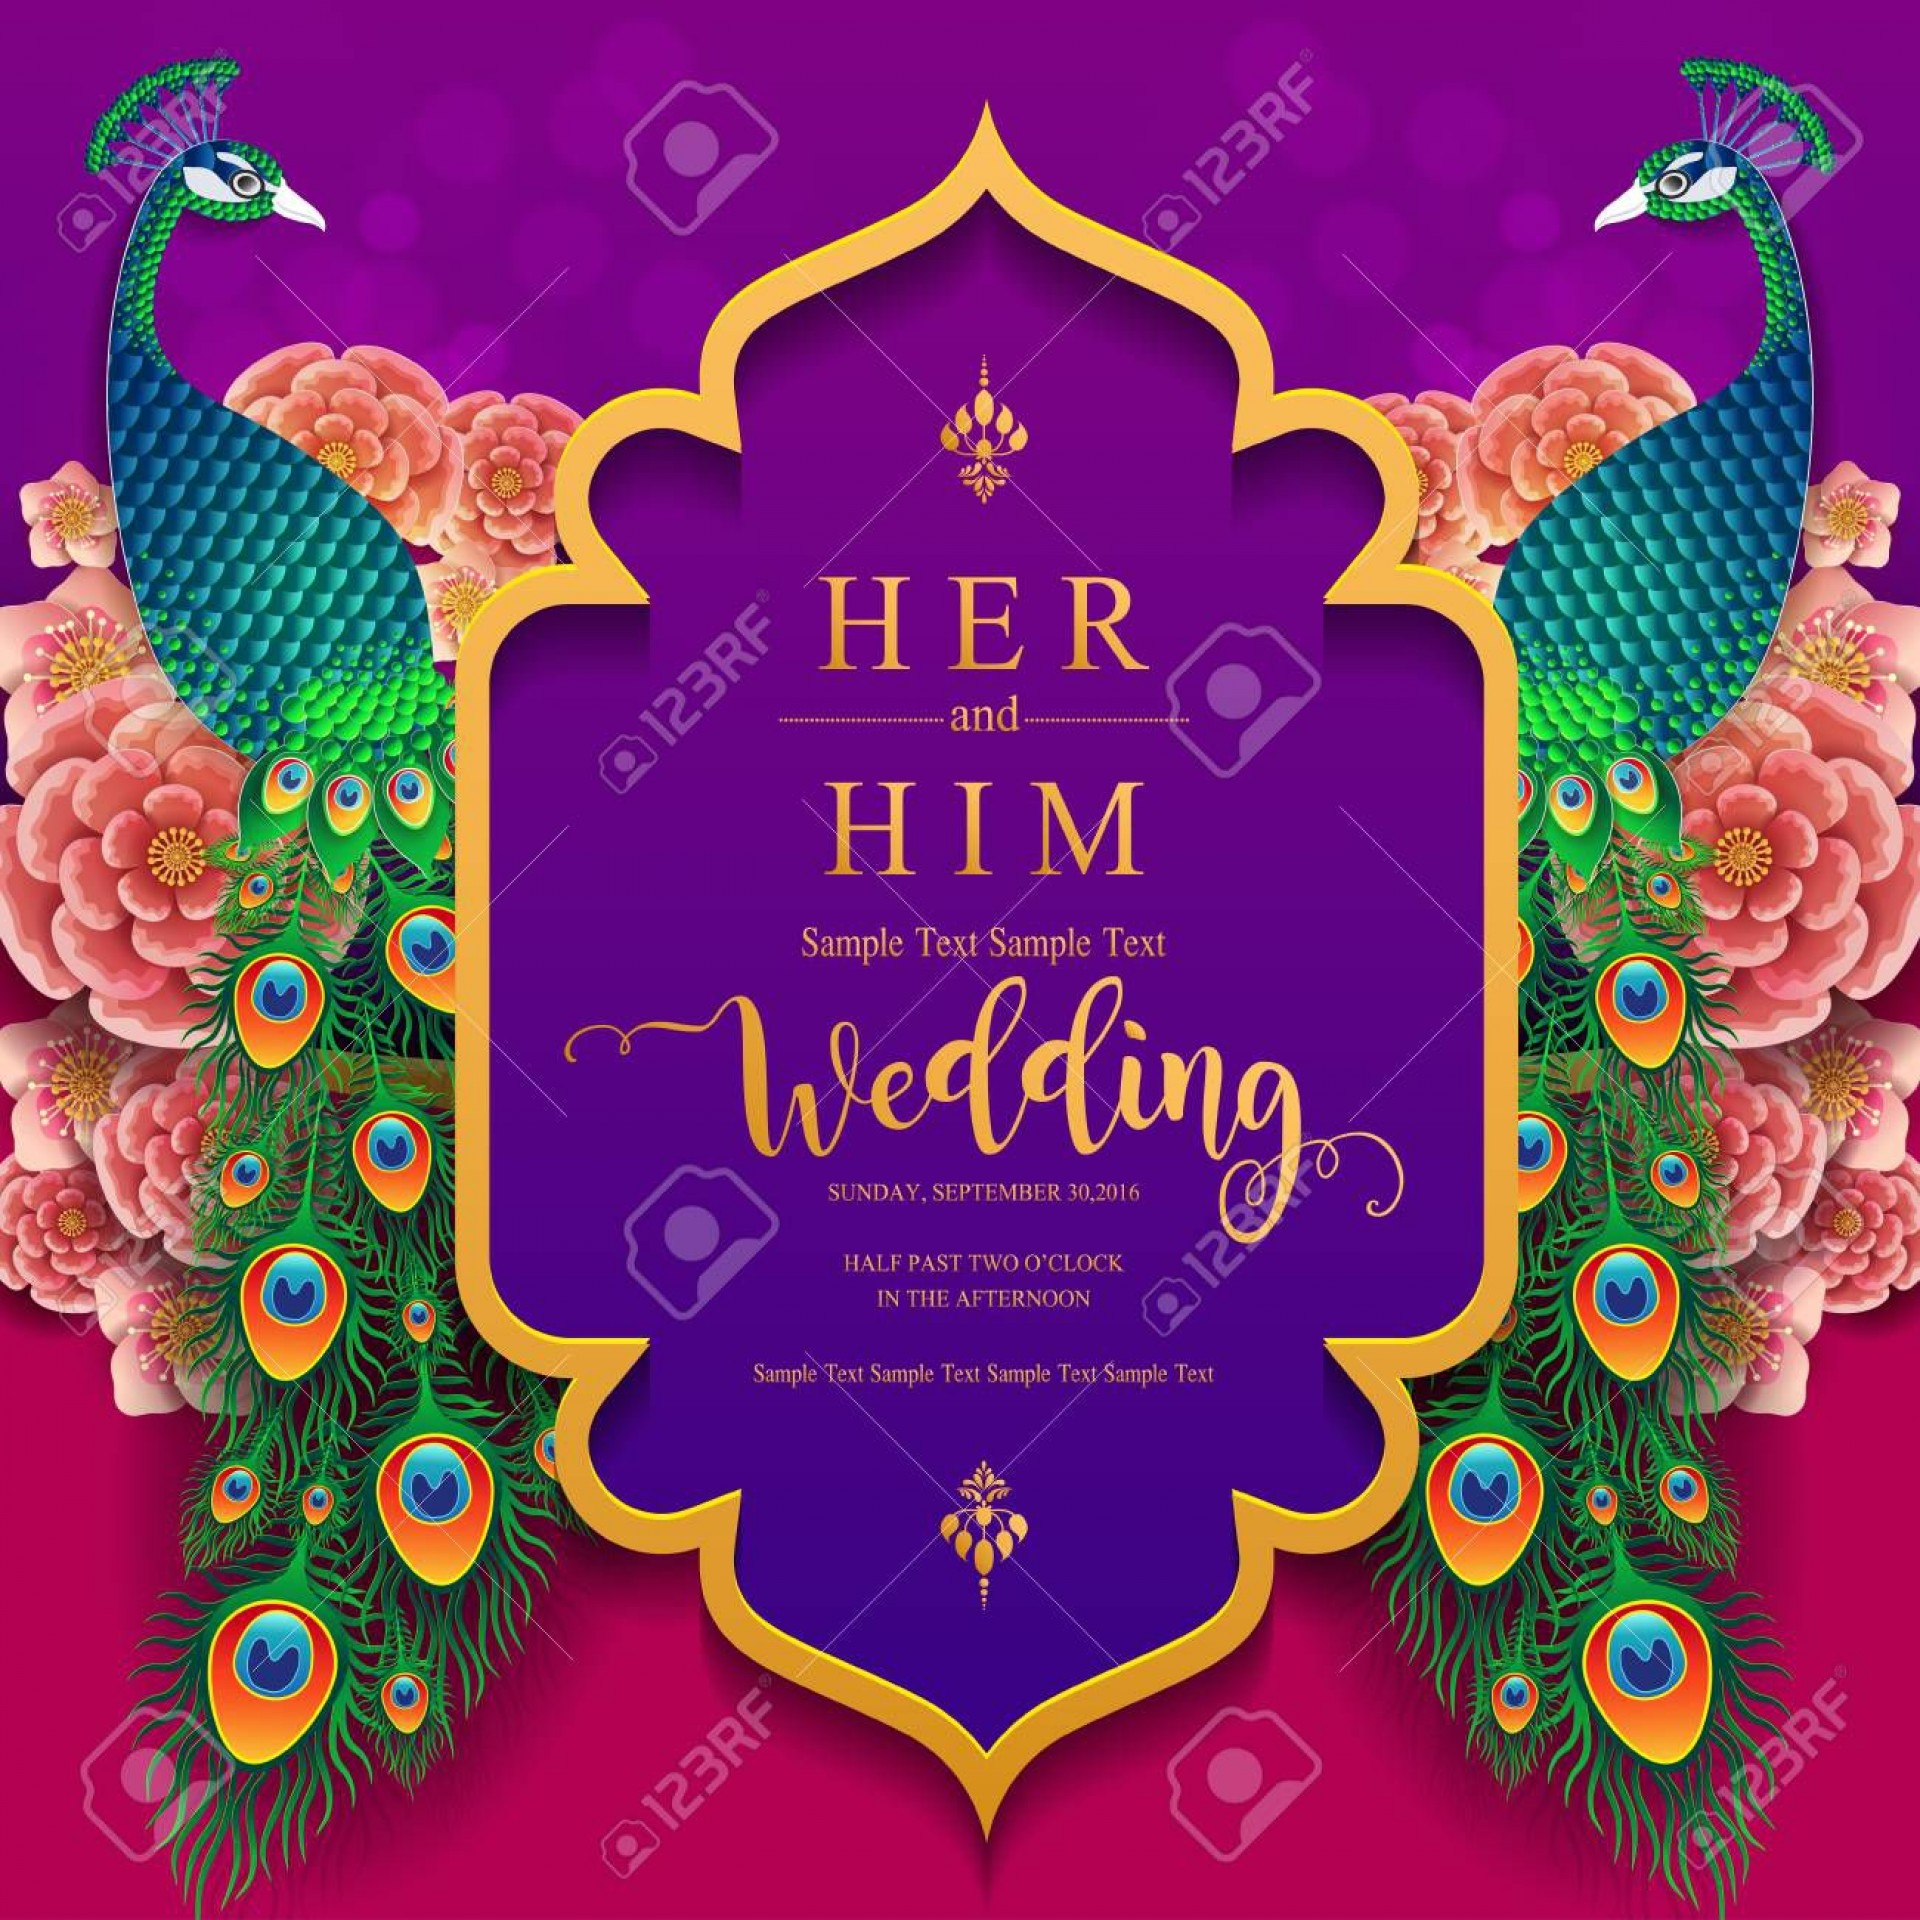 006 Incredible Indian Wedding Invitation Template High Def  Psd Free Download Marriage Online For Friend1920